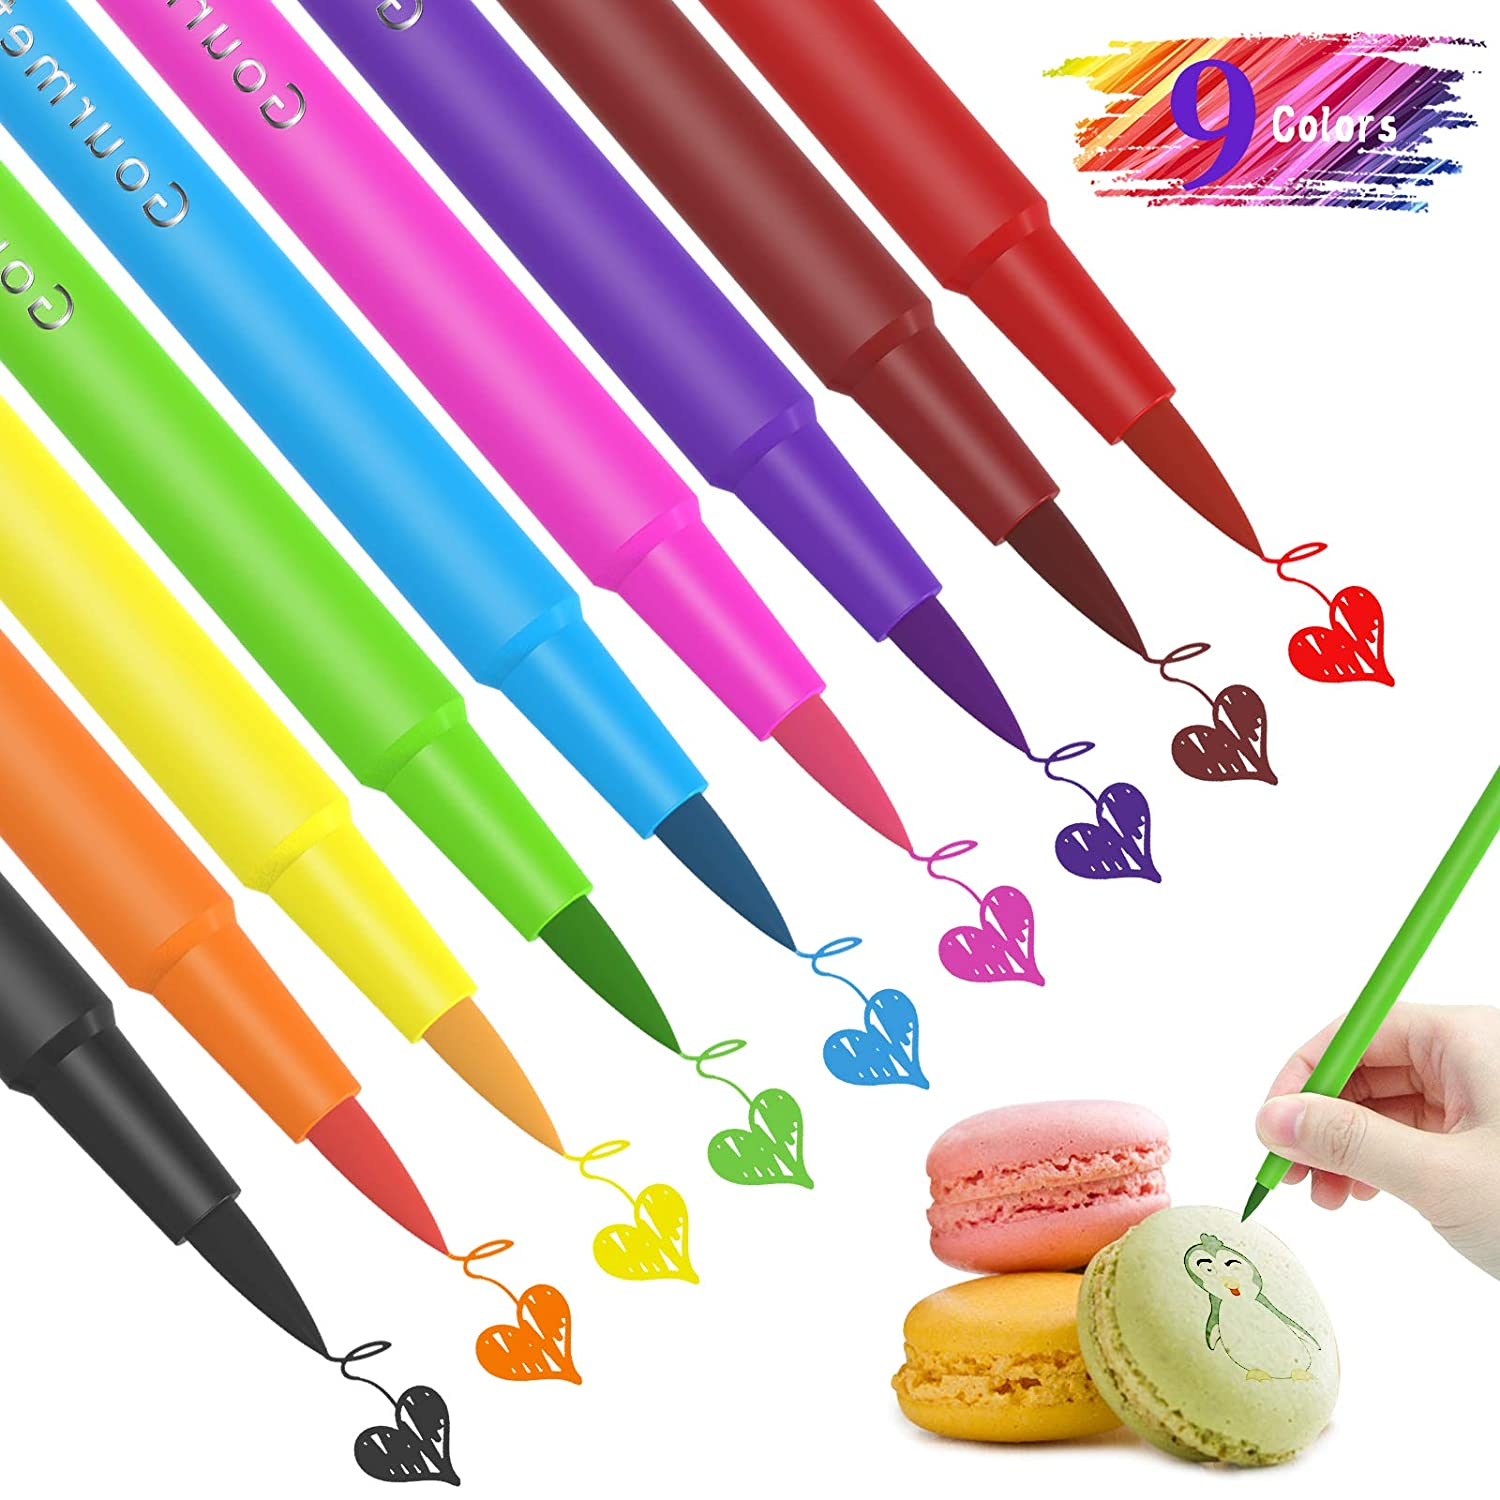 Food Coloring Marker Pens ValueTalks 9Pcs Edible Markers Food Grade Pens Double Use Like Fine Thick Tip,Gourmet Writers for DIY Decorating Fondant,Cakes,Cookies,Frosting,Marshmallows,Easter Eggs